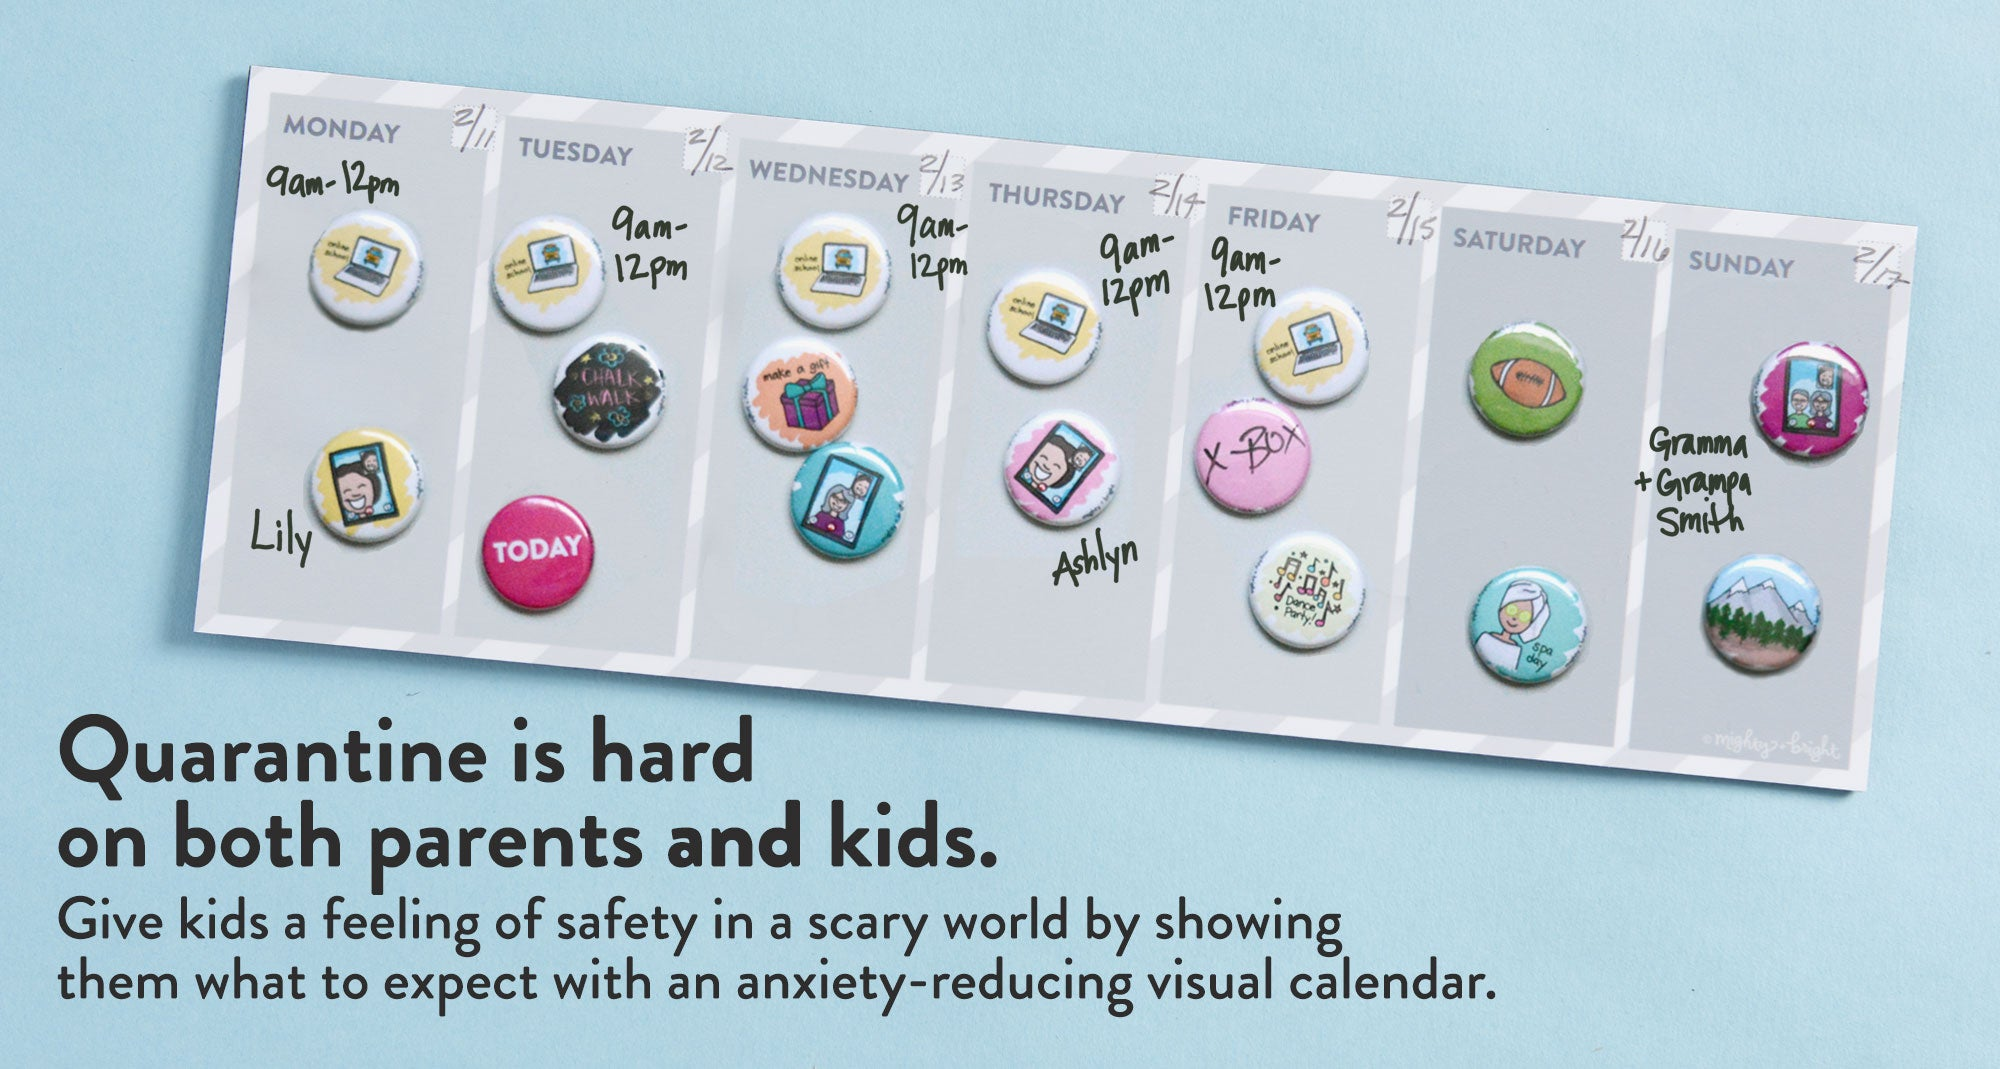 Quarantine is hard on both parents and kids. Give kids a feeling of safety in a scary world by showing  them what to expect with an anxiety-reducing visual calendar.